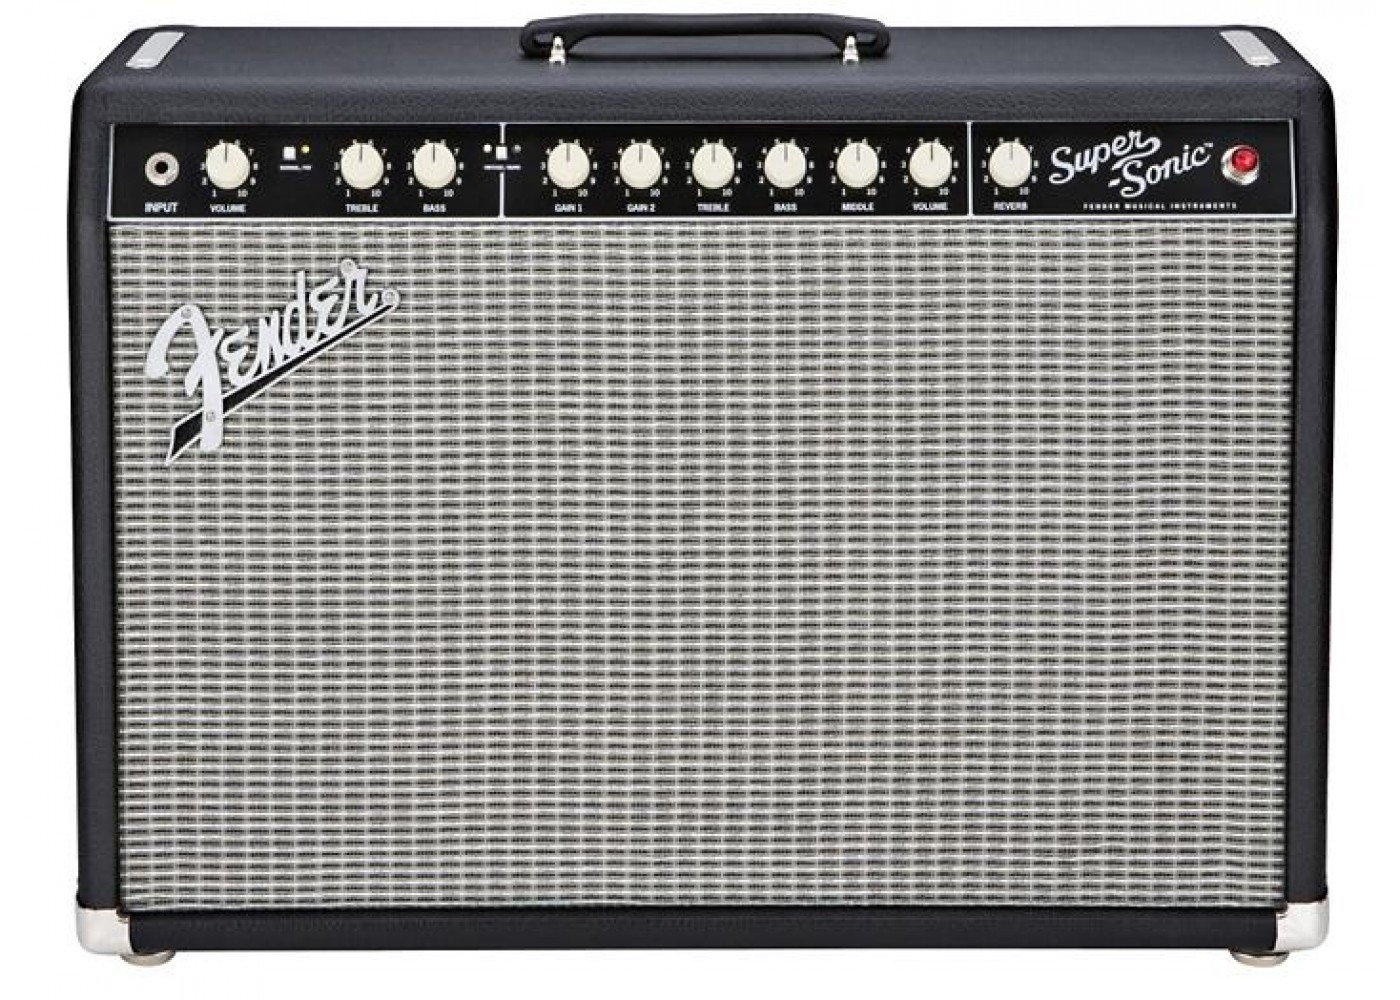 fender super sonic 22 all tube electric guitar amp 22 watts. Black Bedroom Furniture Sets. Home Design Ideas